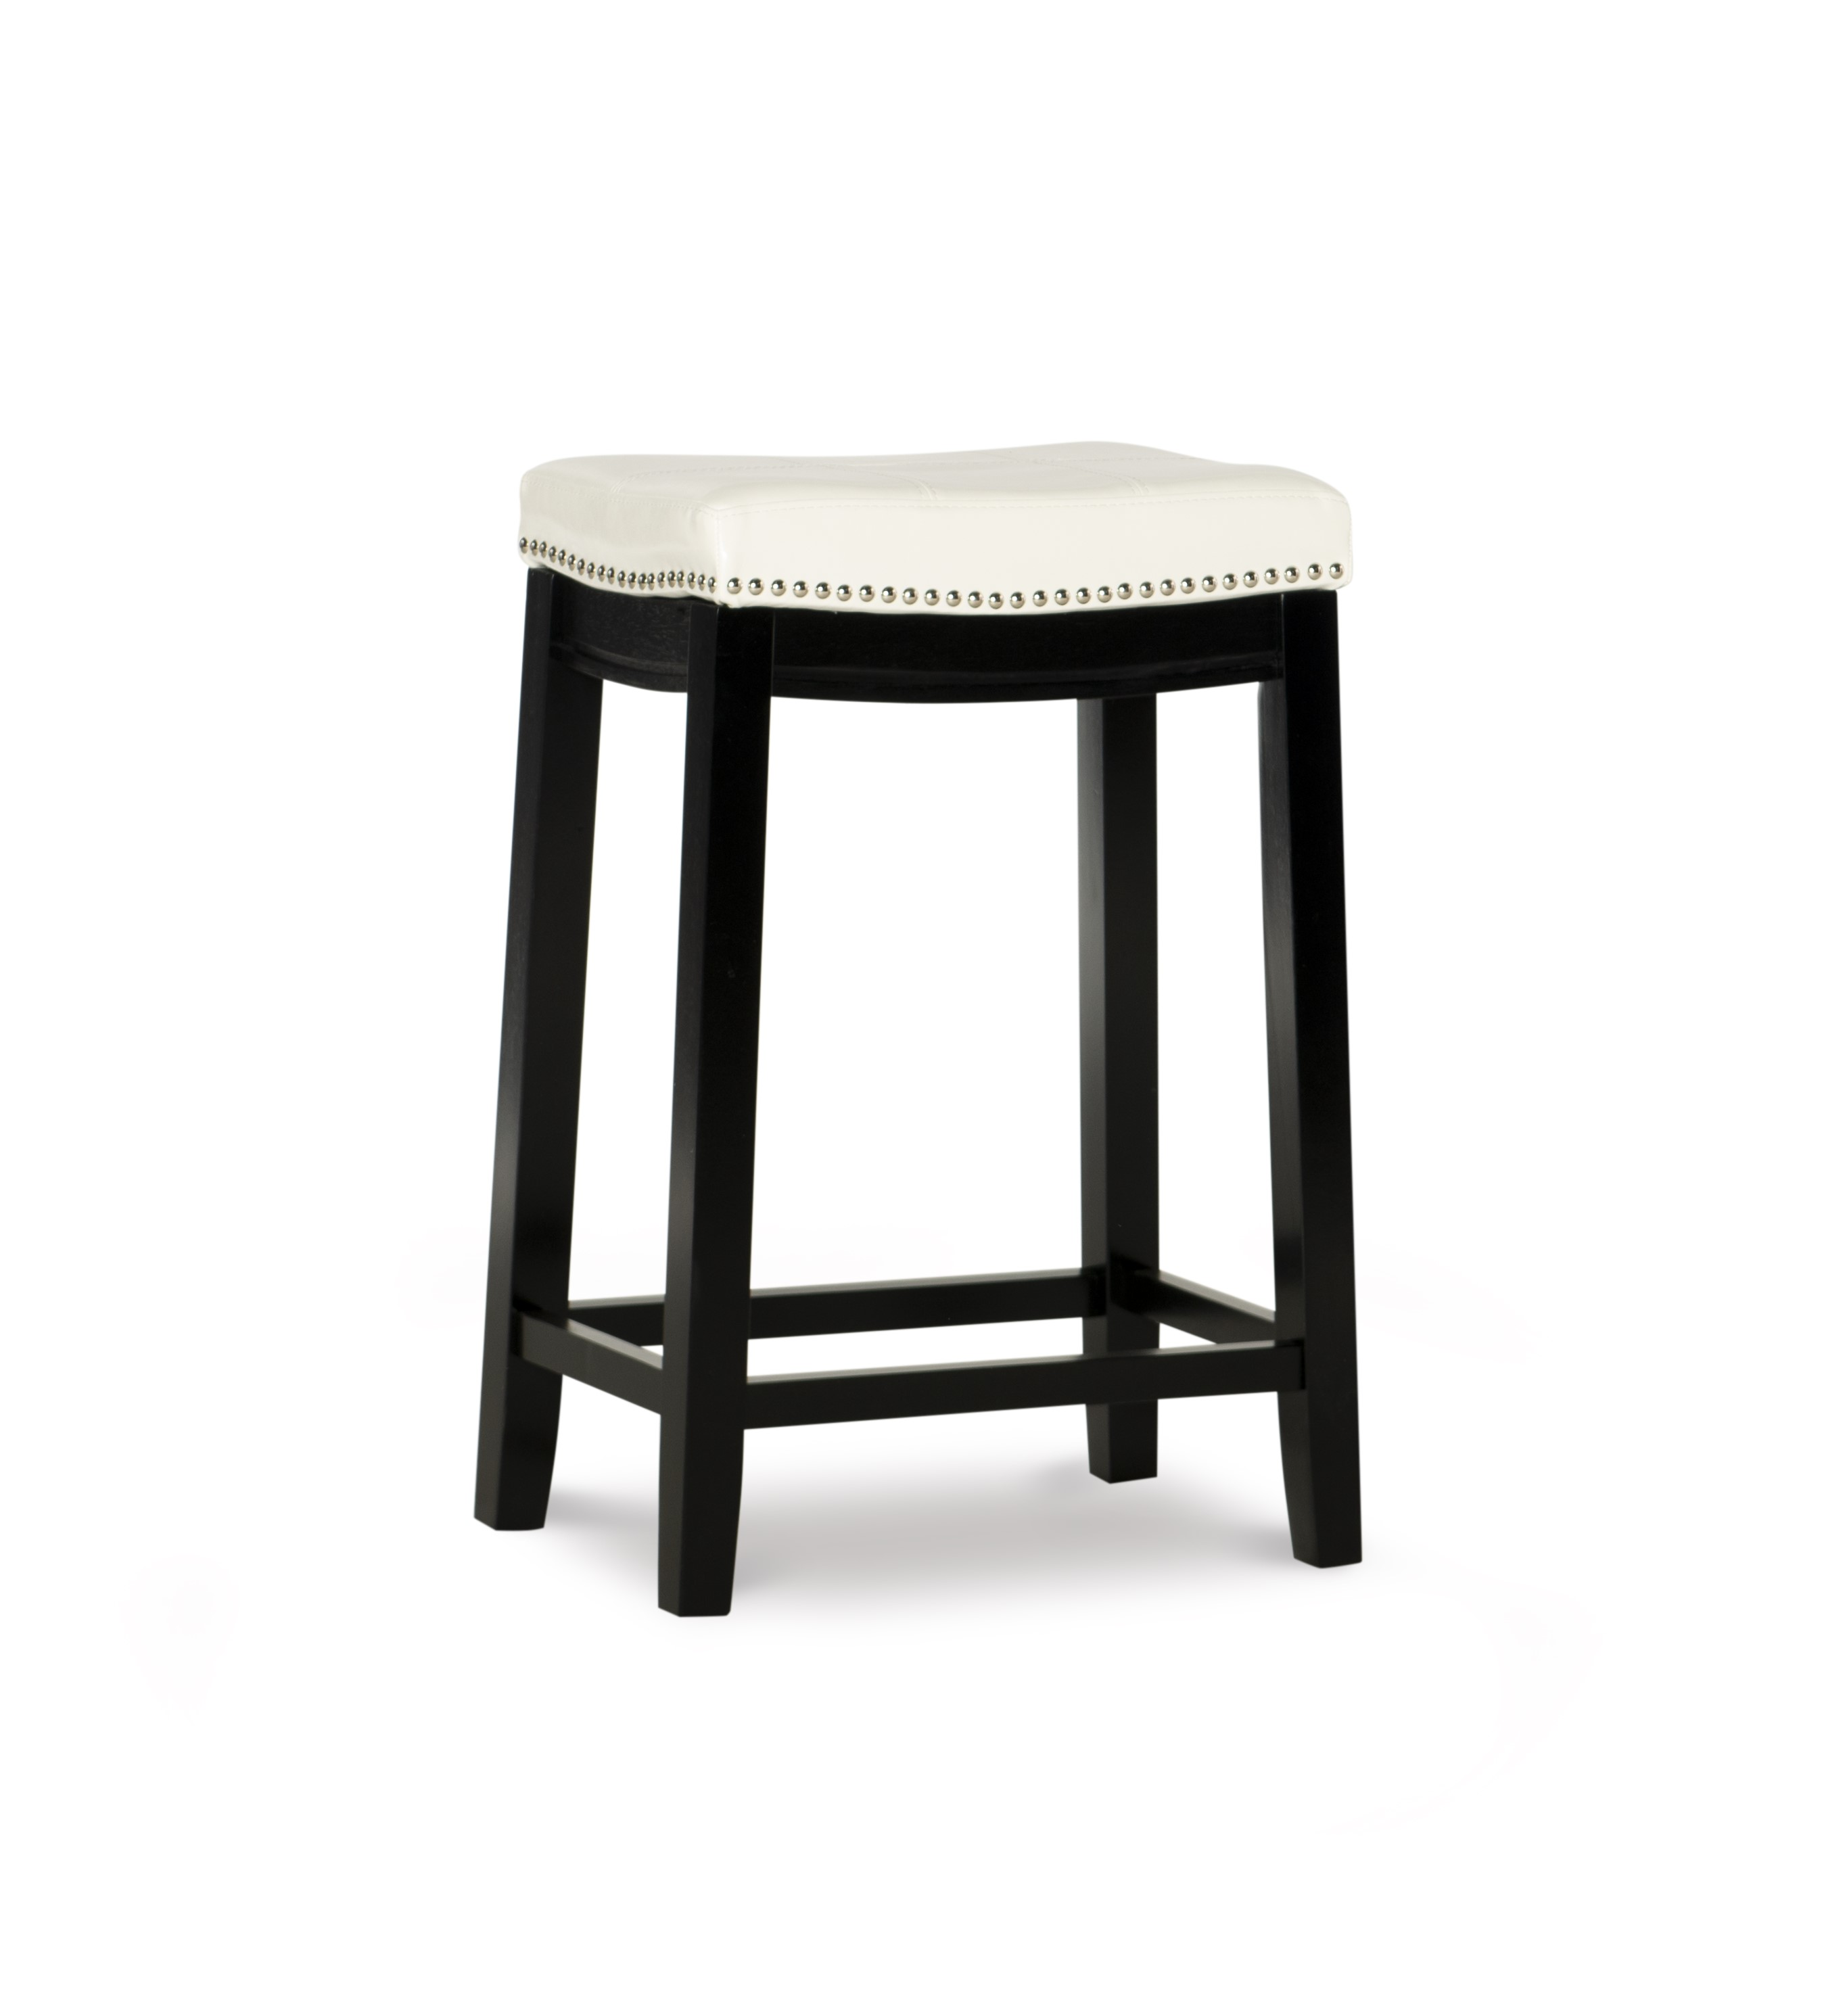 Strange Linon Claridge Backless Counter Stool 24 Inch Seat Height Uwap Interior Chair Design Uwaporg